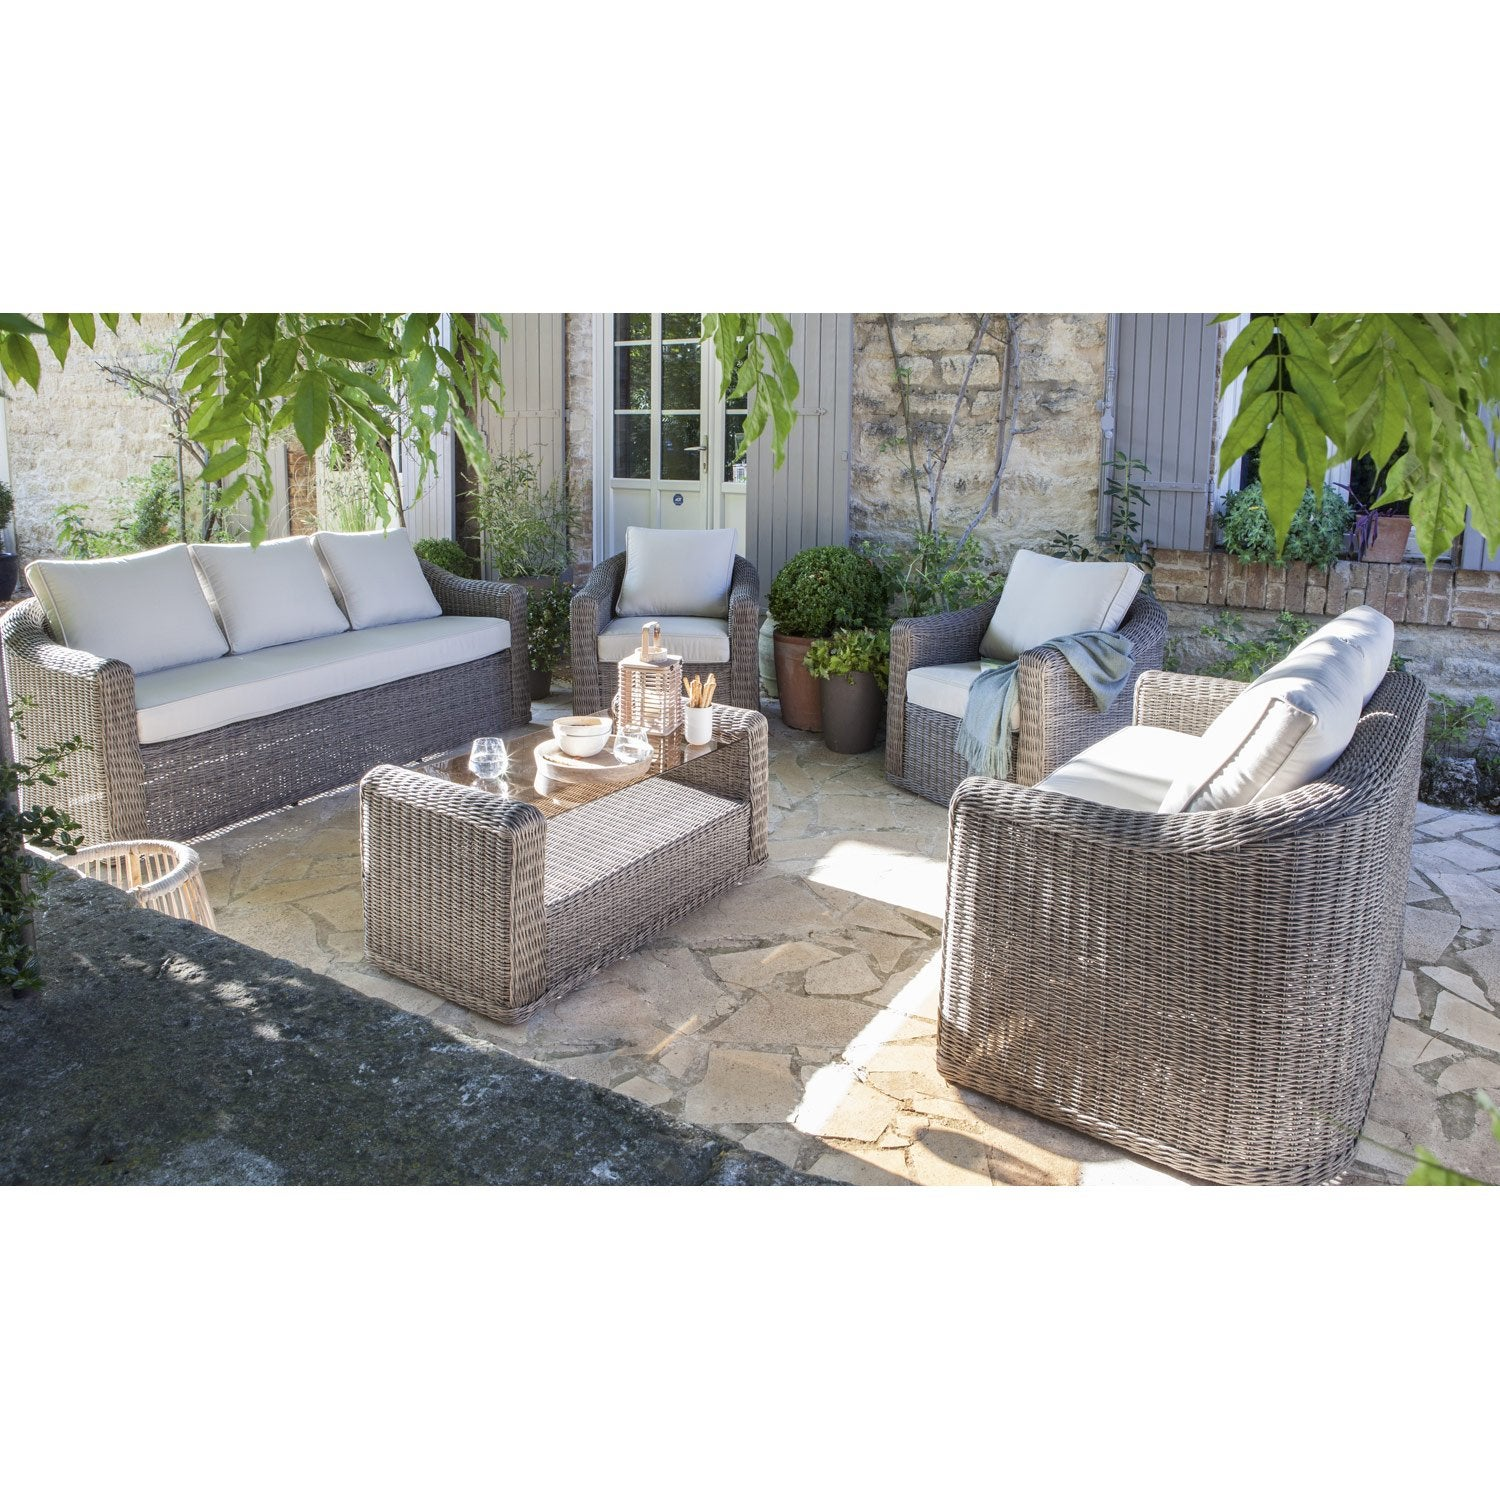 Ensemble table et chaise de jardin leroy merlin obtenez for Chaise jardin leroy merlin